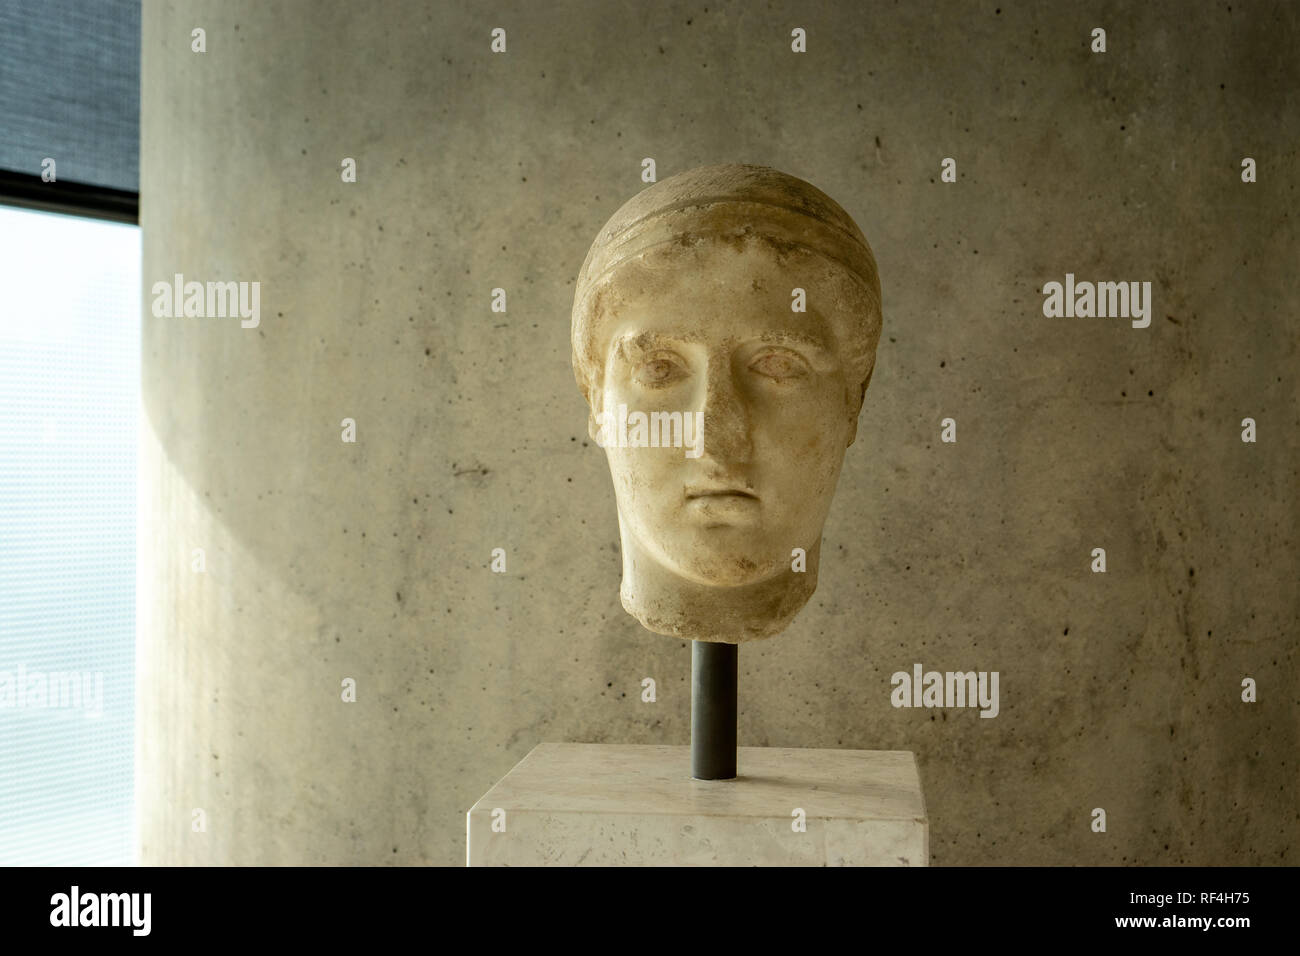 Seeing Ancient Greek sculpture of the Acropolis Museum. Two words: life-changing. - Stock Image